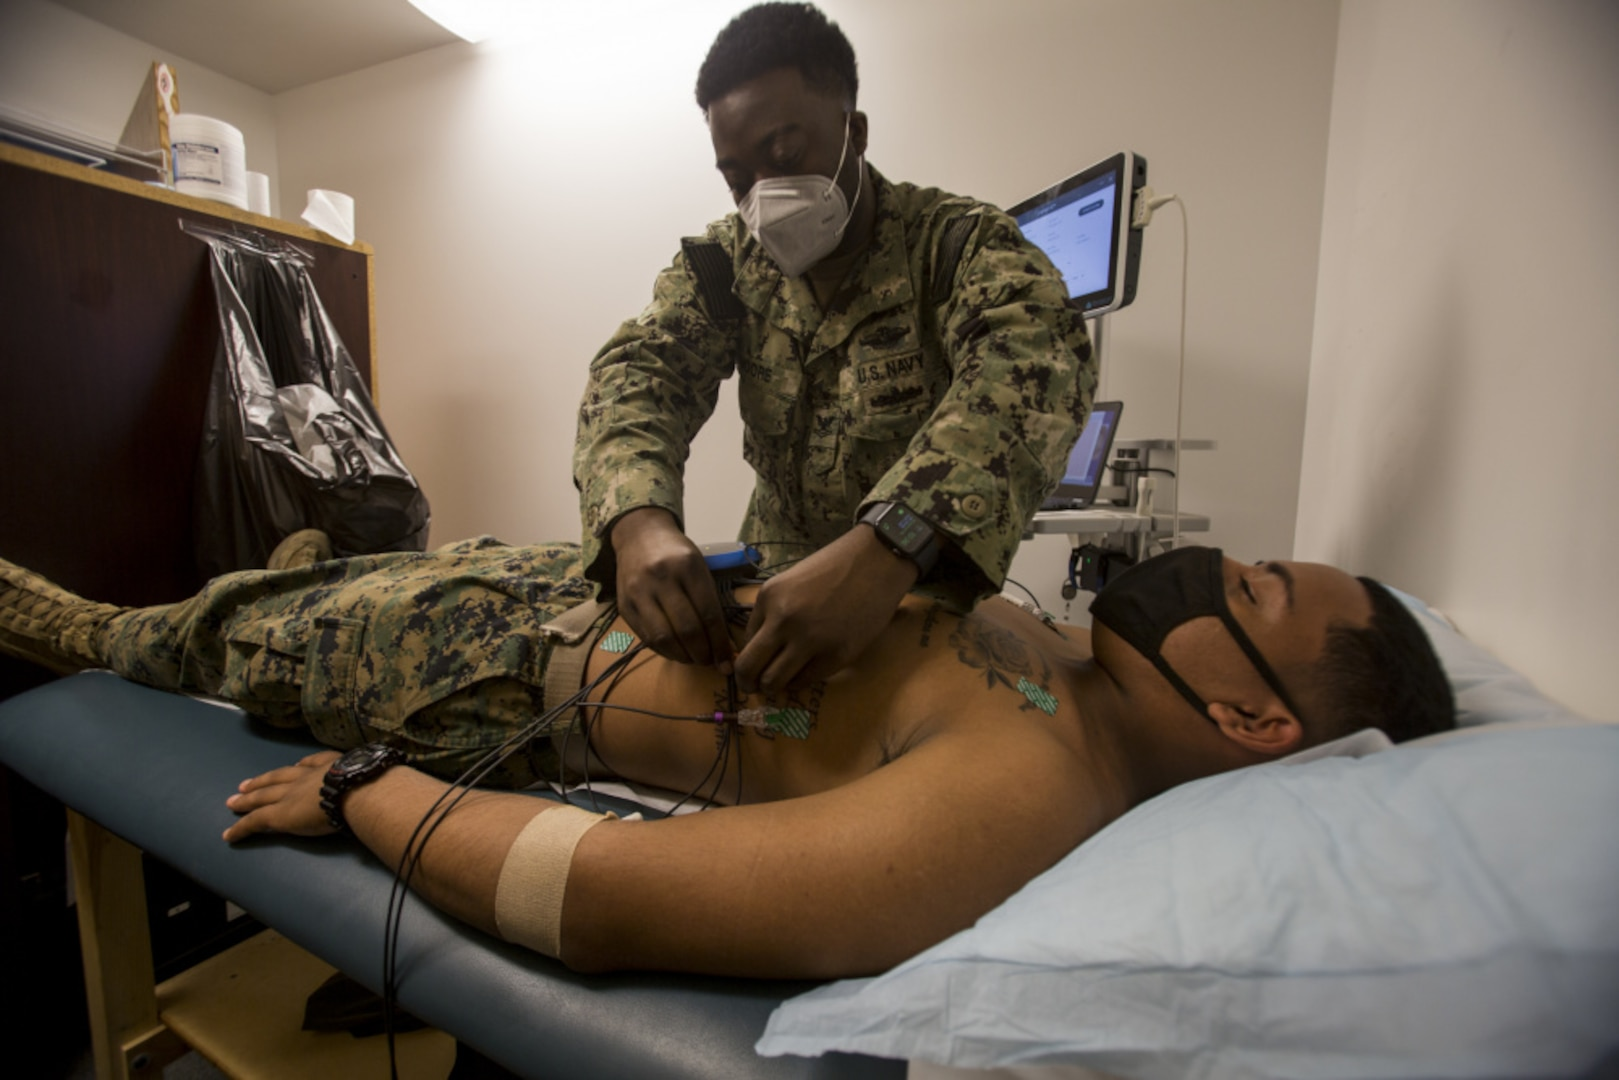 U.S. Navy Hospital Corpsman 2nd Class Christopher Moore, with the Naval Medicine Research Center, prepares to conduct a health assessment of a Marine participant with the COVID-19 Health Action Response for Marines (CHARM) study on Camp Johnson, N.C., Mar. 3, 2021.